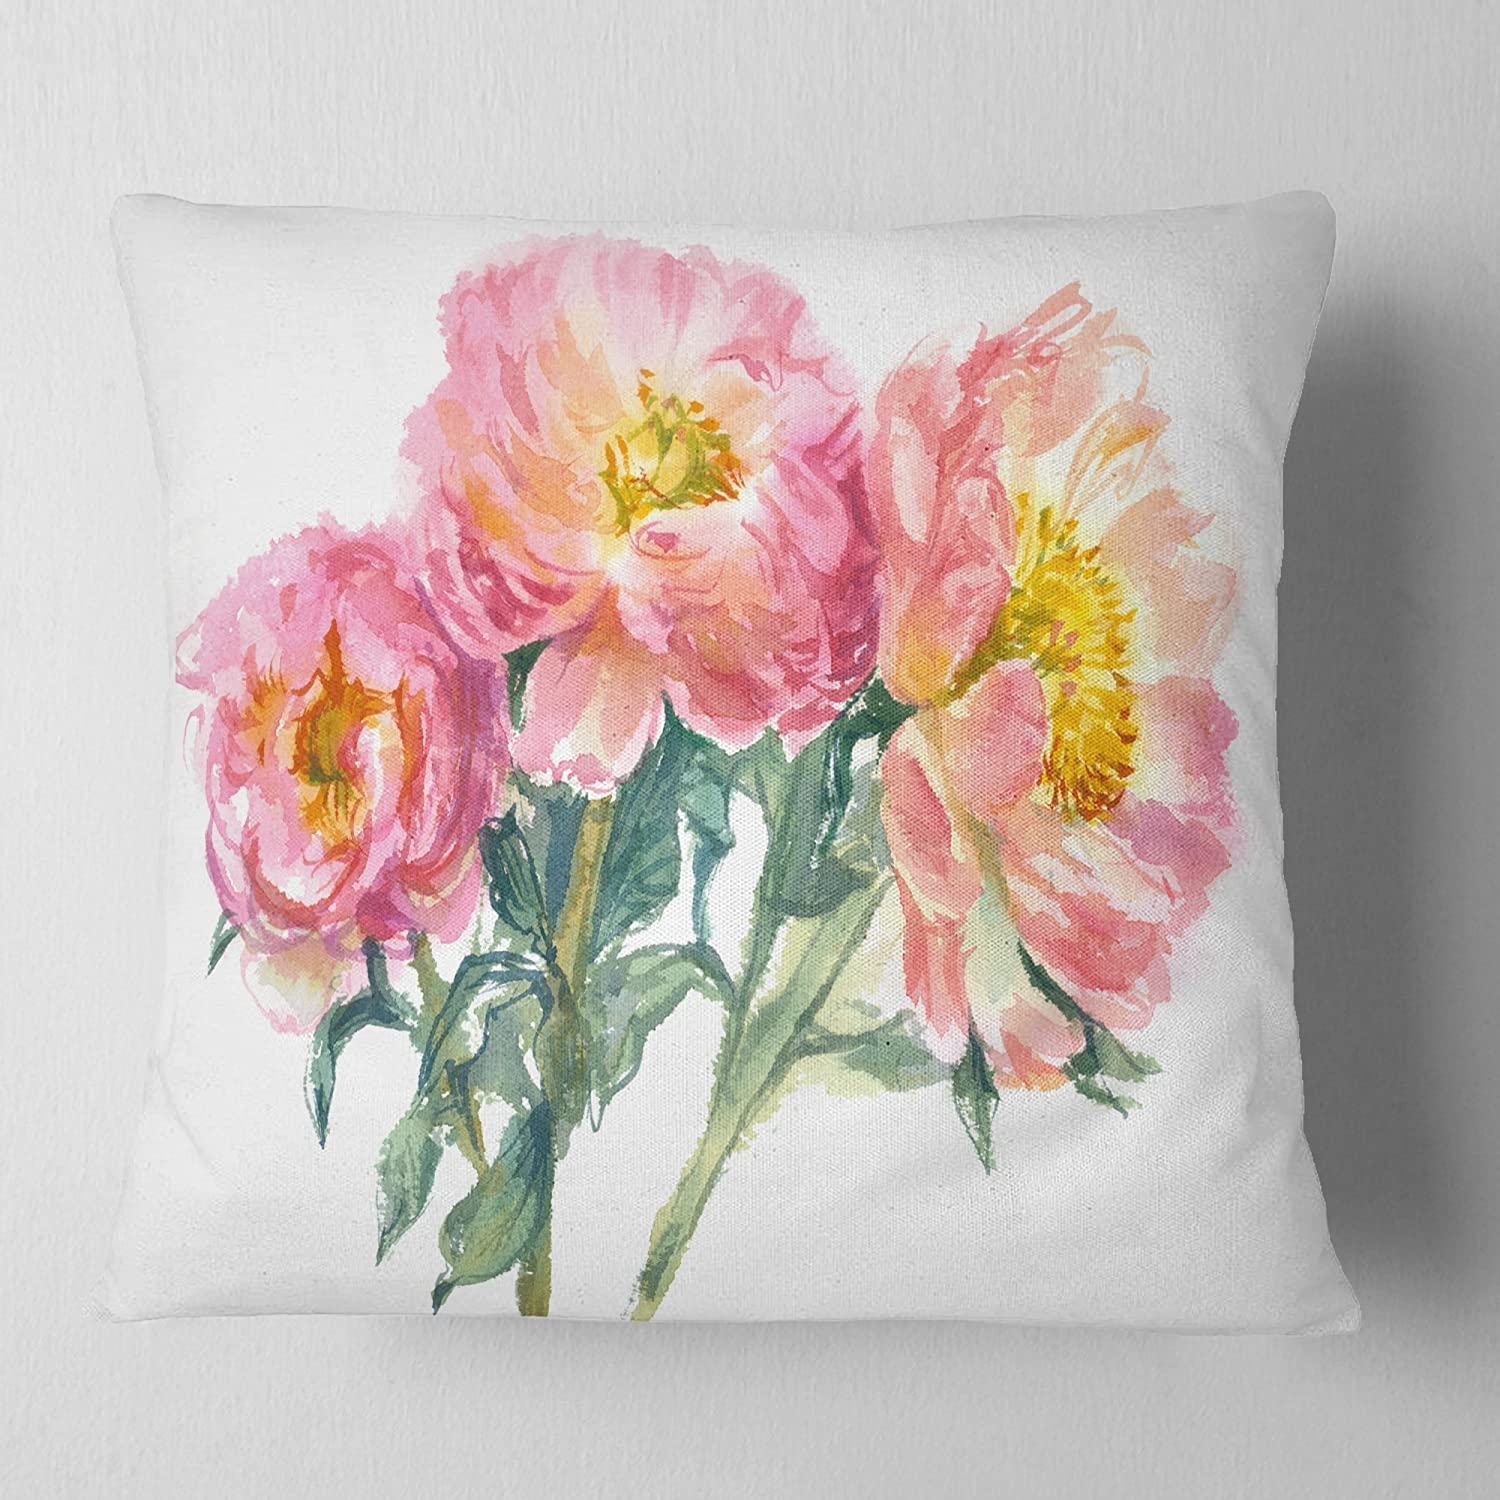 Designart CU13856-18-18 Bouquet of Pink Peony Watercolor' Flower Cushion Cover for Living Room, Sofa Throw Pillow 18 in. x 18 in. in